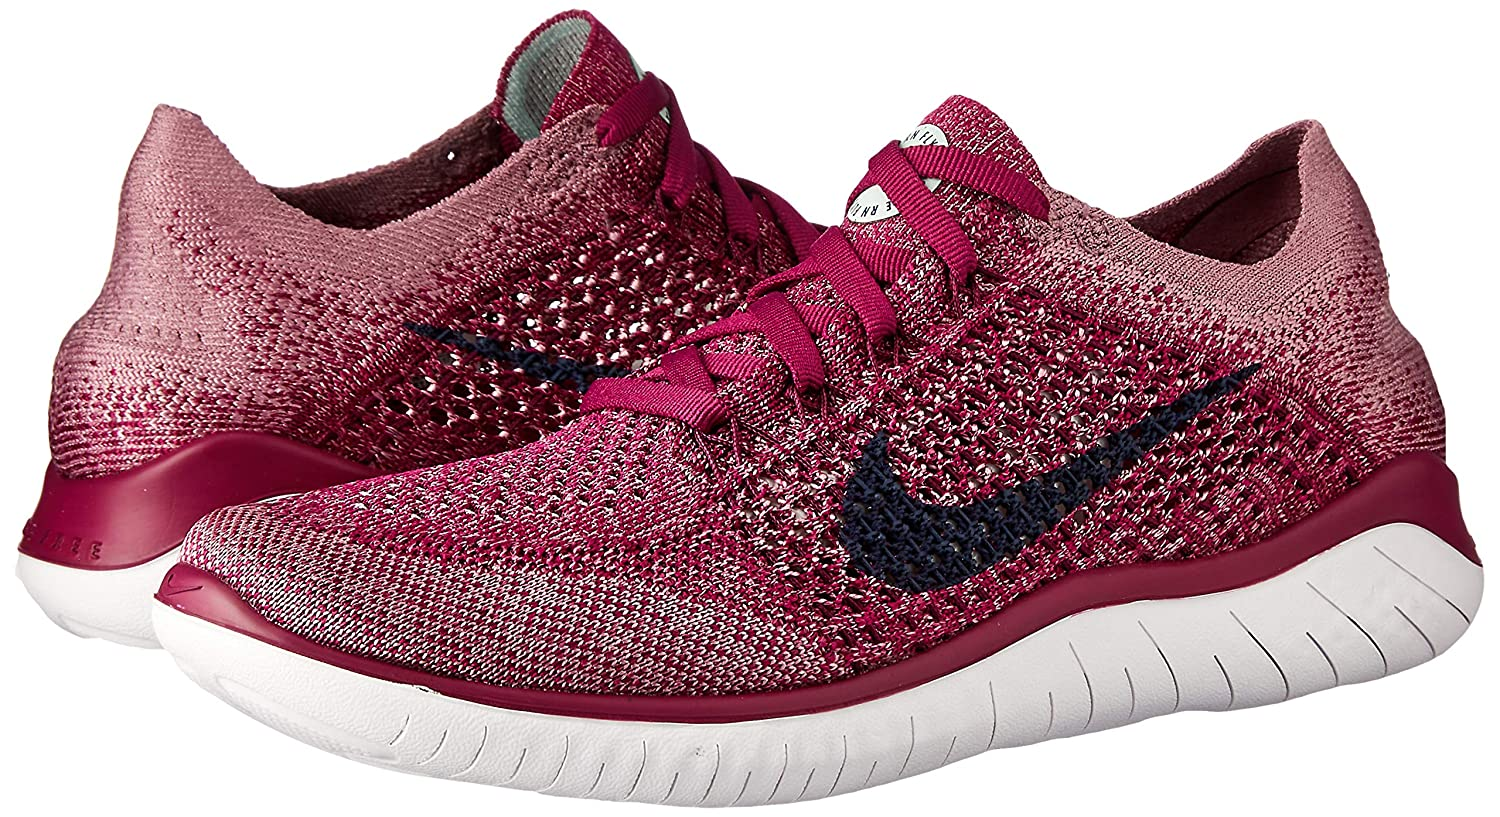 new style 2ab34 69d48 Nike Free RN Flyknit 2018 Women's Running Shoe Raspberry RED/Blue  Void-White-Teal Tint 10.0